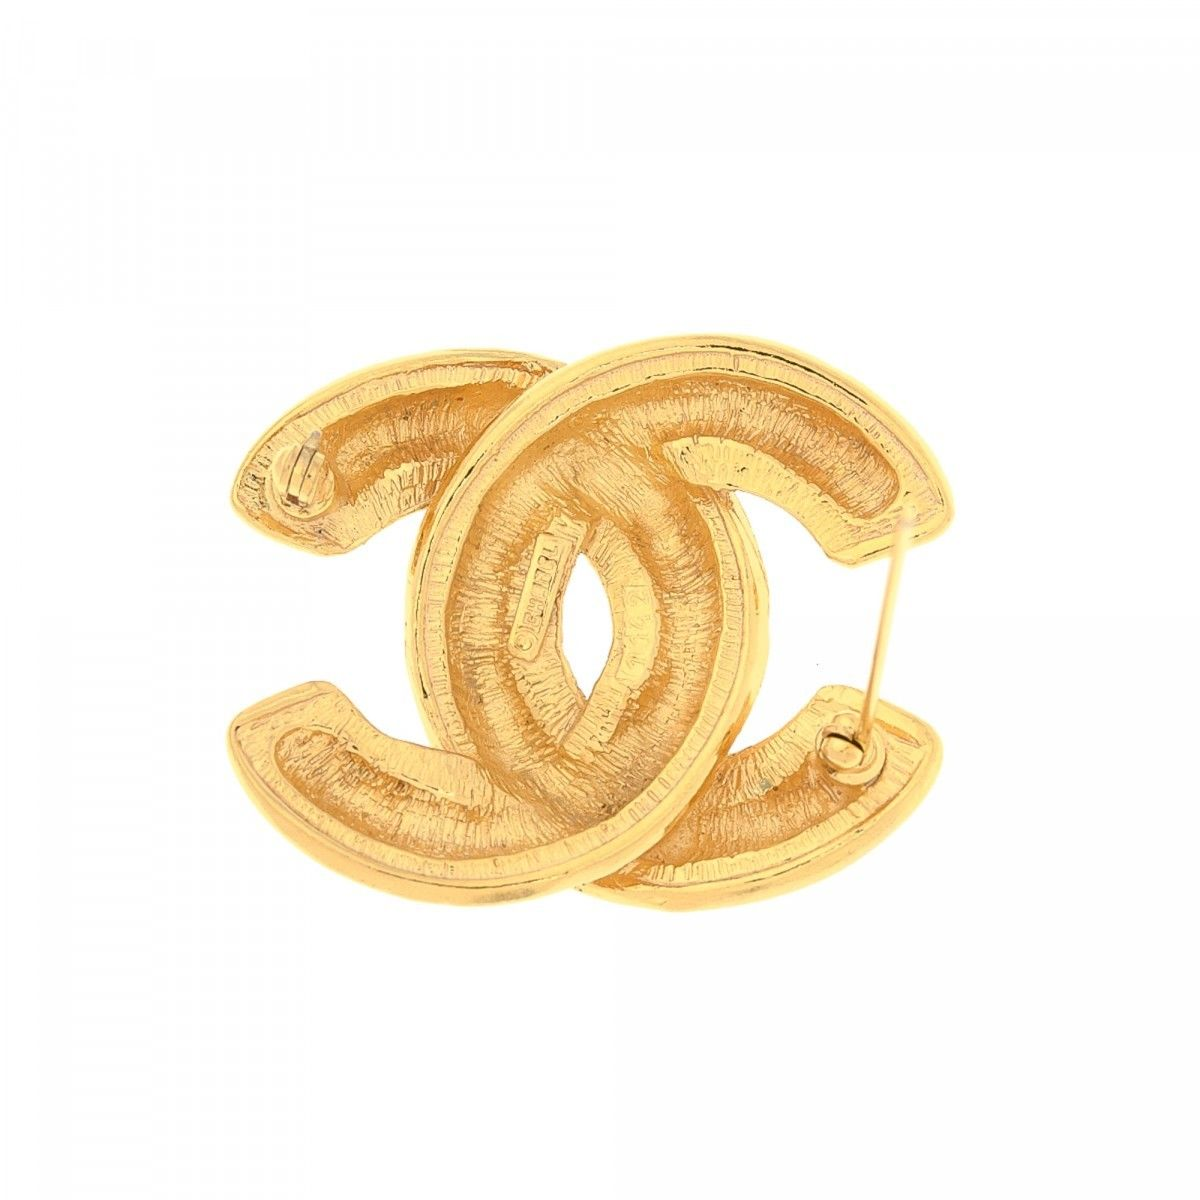 39f3c988c18 CC Logo Quilted Pin Brooch. Free Shipping. LXRandCo guarantees this is an authentic  vintage Chanel CC Logo Quilted Pin brooch. This everyday brooch in gold ...